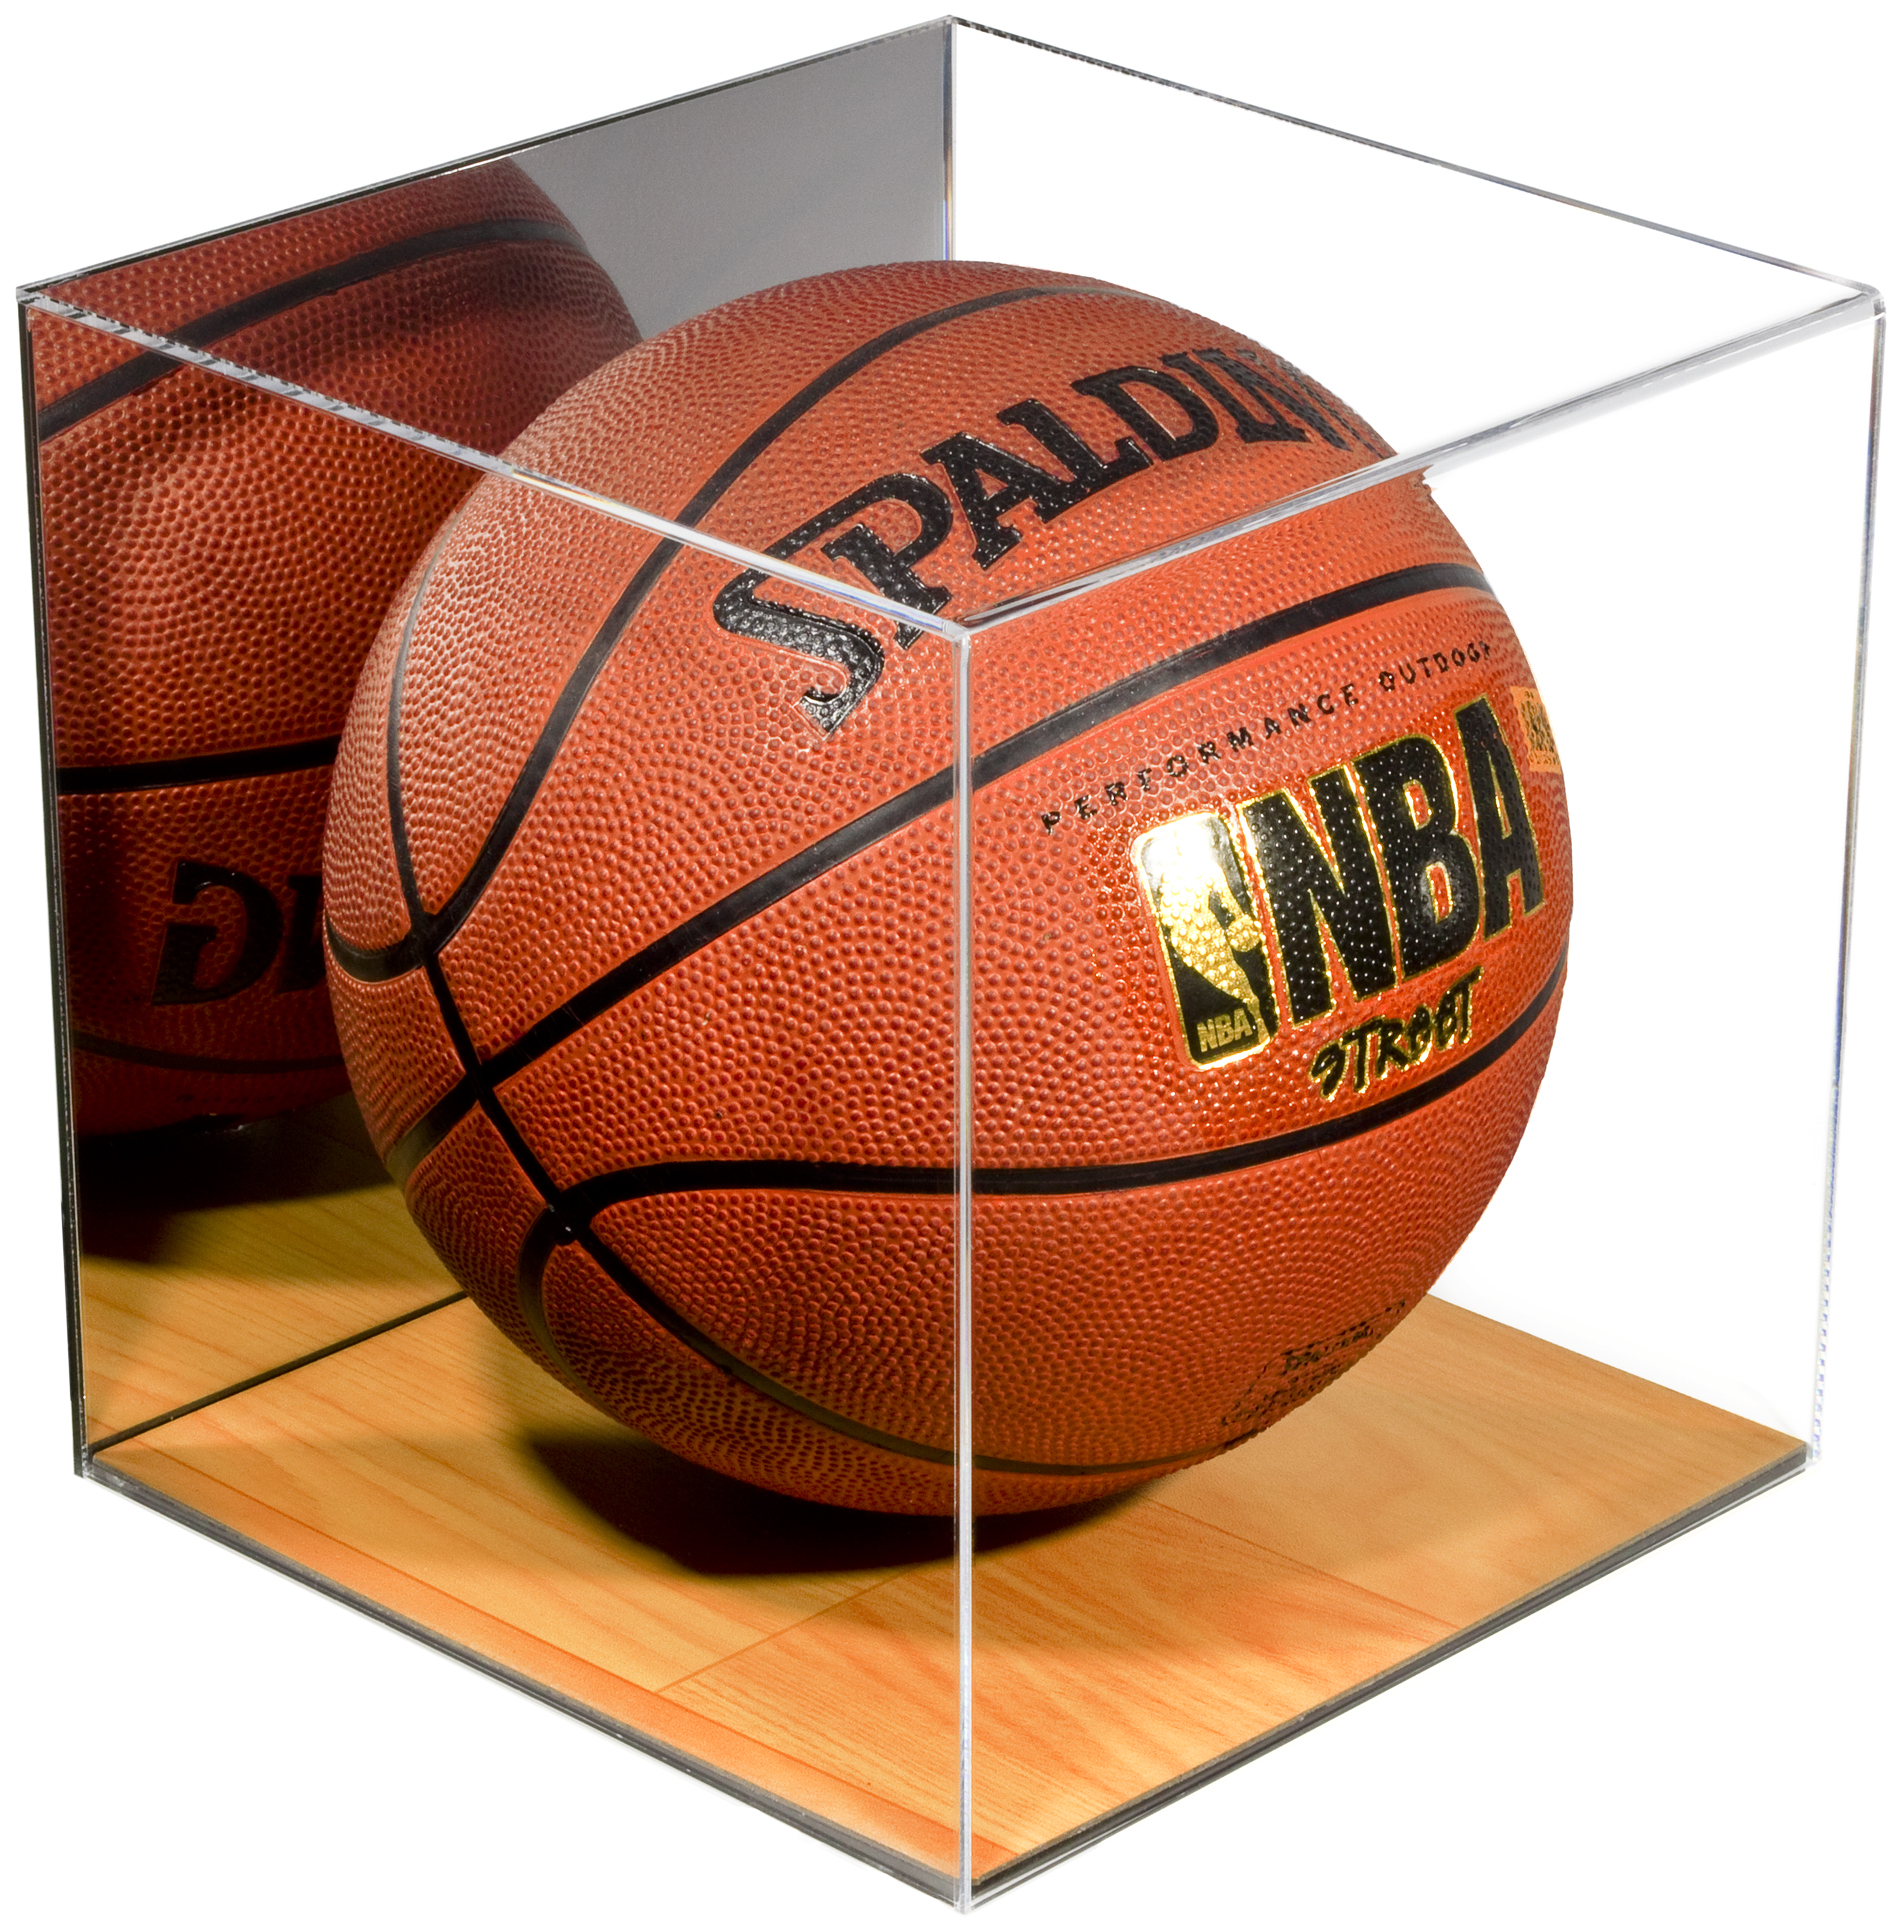 Deluxe Acrylic Full Size Basketball Display Case with Simulated Wood Floor and Mirror (A008-WB)